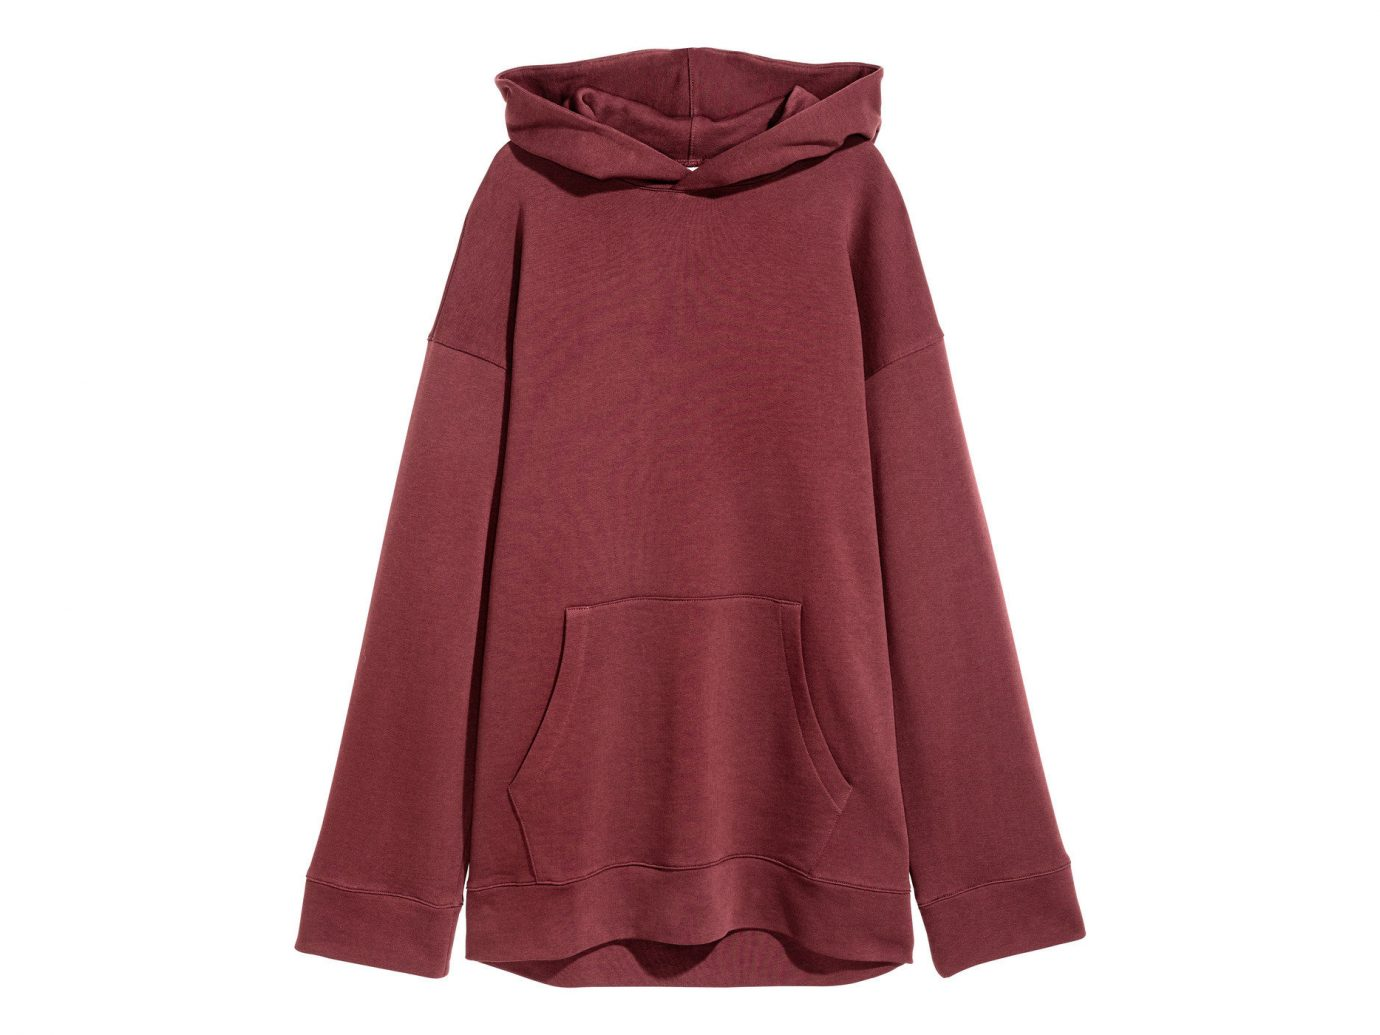 Style + Design clothing pink sleeve outerwear dress magenta wool gown neck textile peach cocktail dress collar